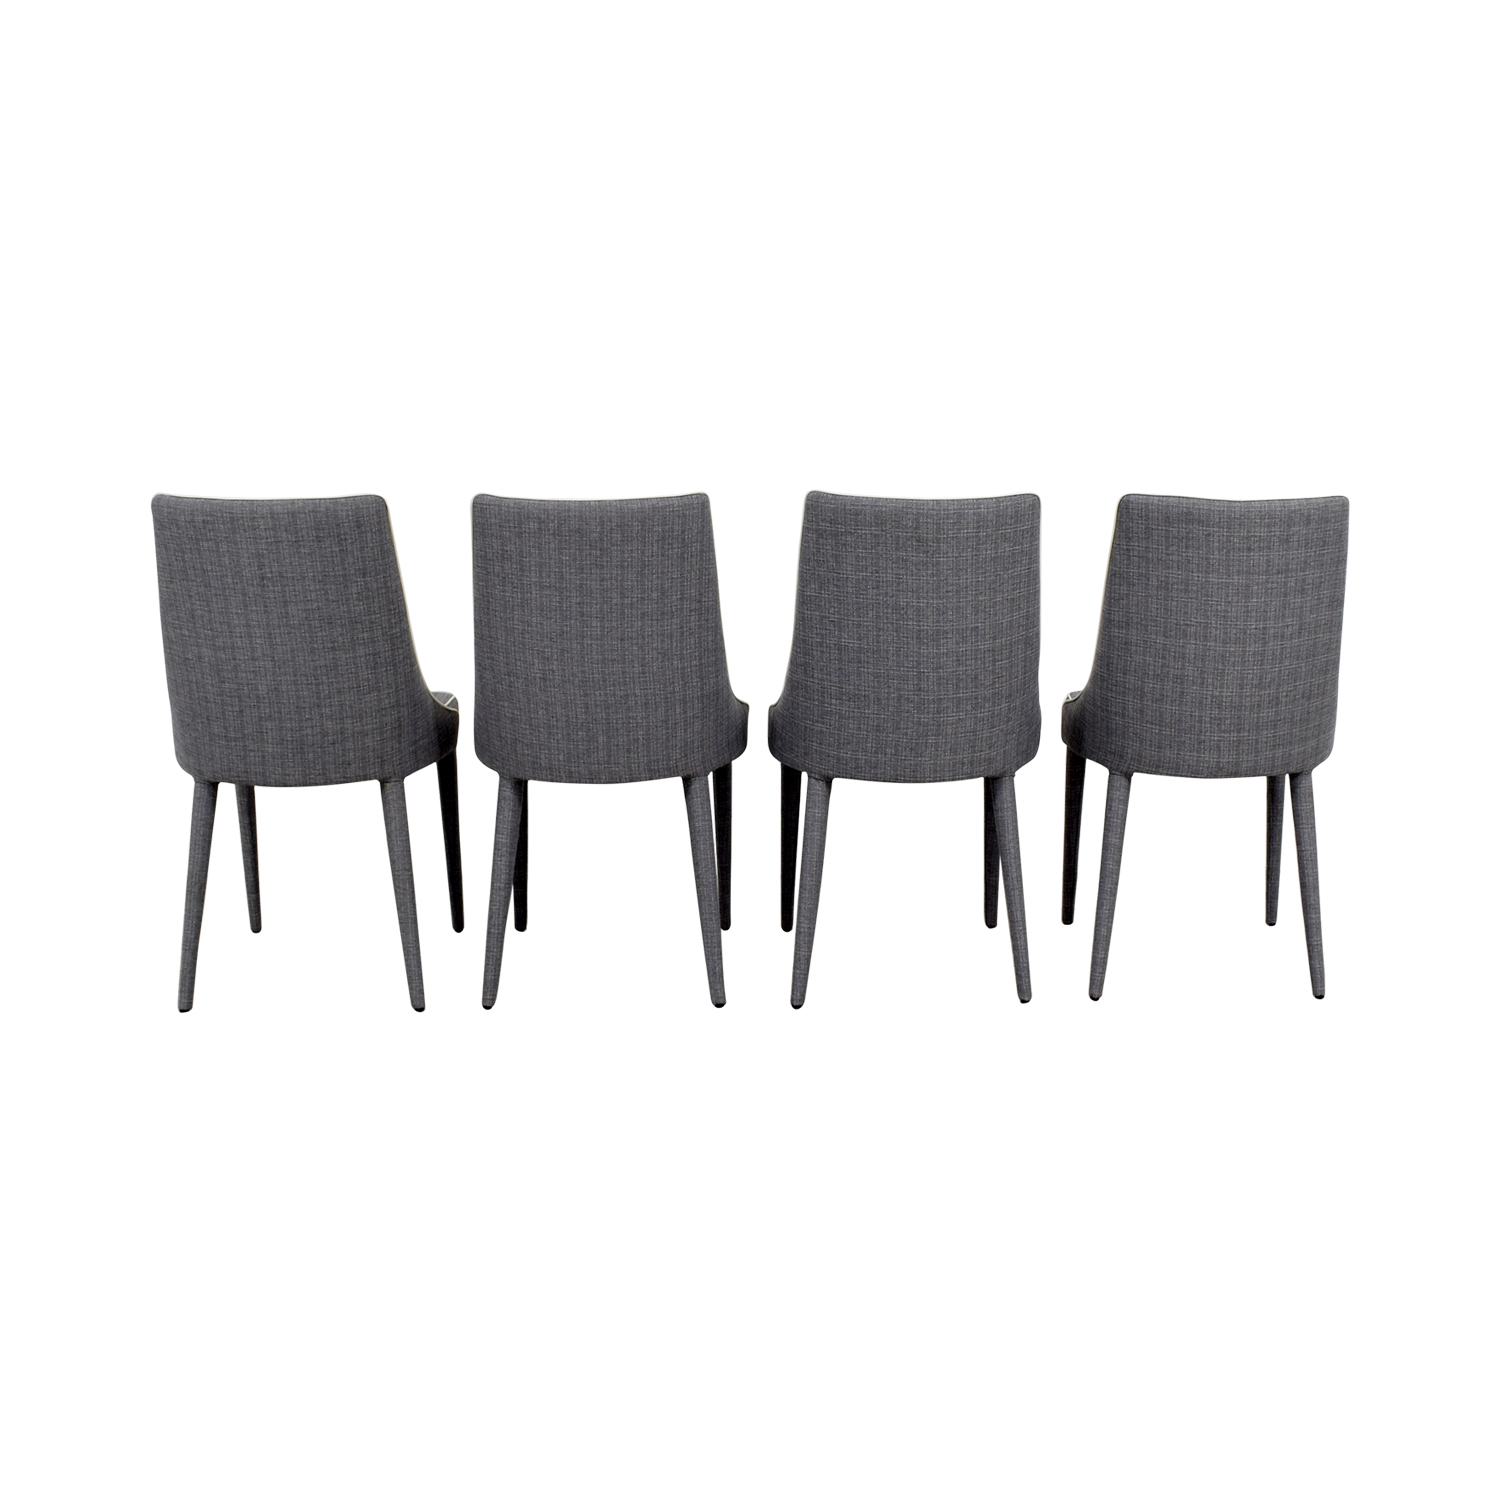 Inmod Inmod Gray Fabric Stools second hand